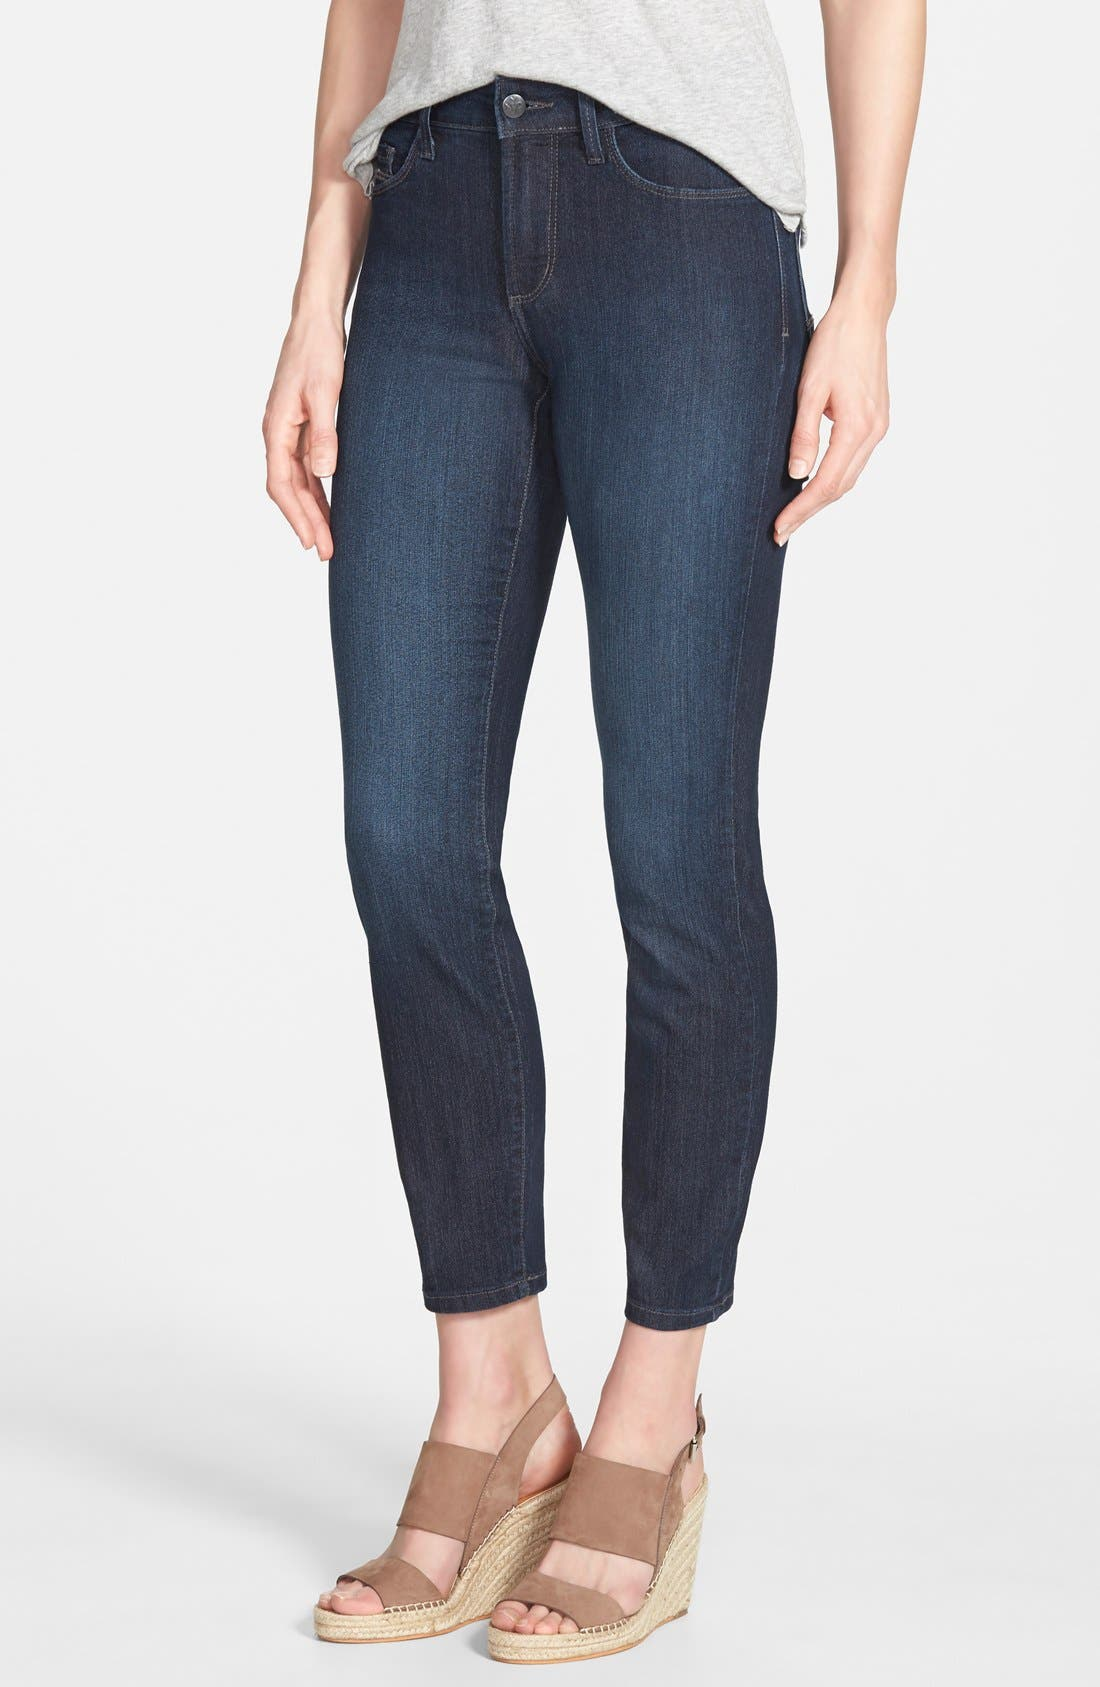 Alternate Image 1 Selected - NYDJ 'Clarissa' Stretch Ankle Skinny Jeans (Dark Enzyme) (Regular & Petite)